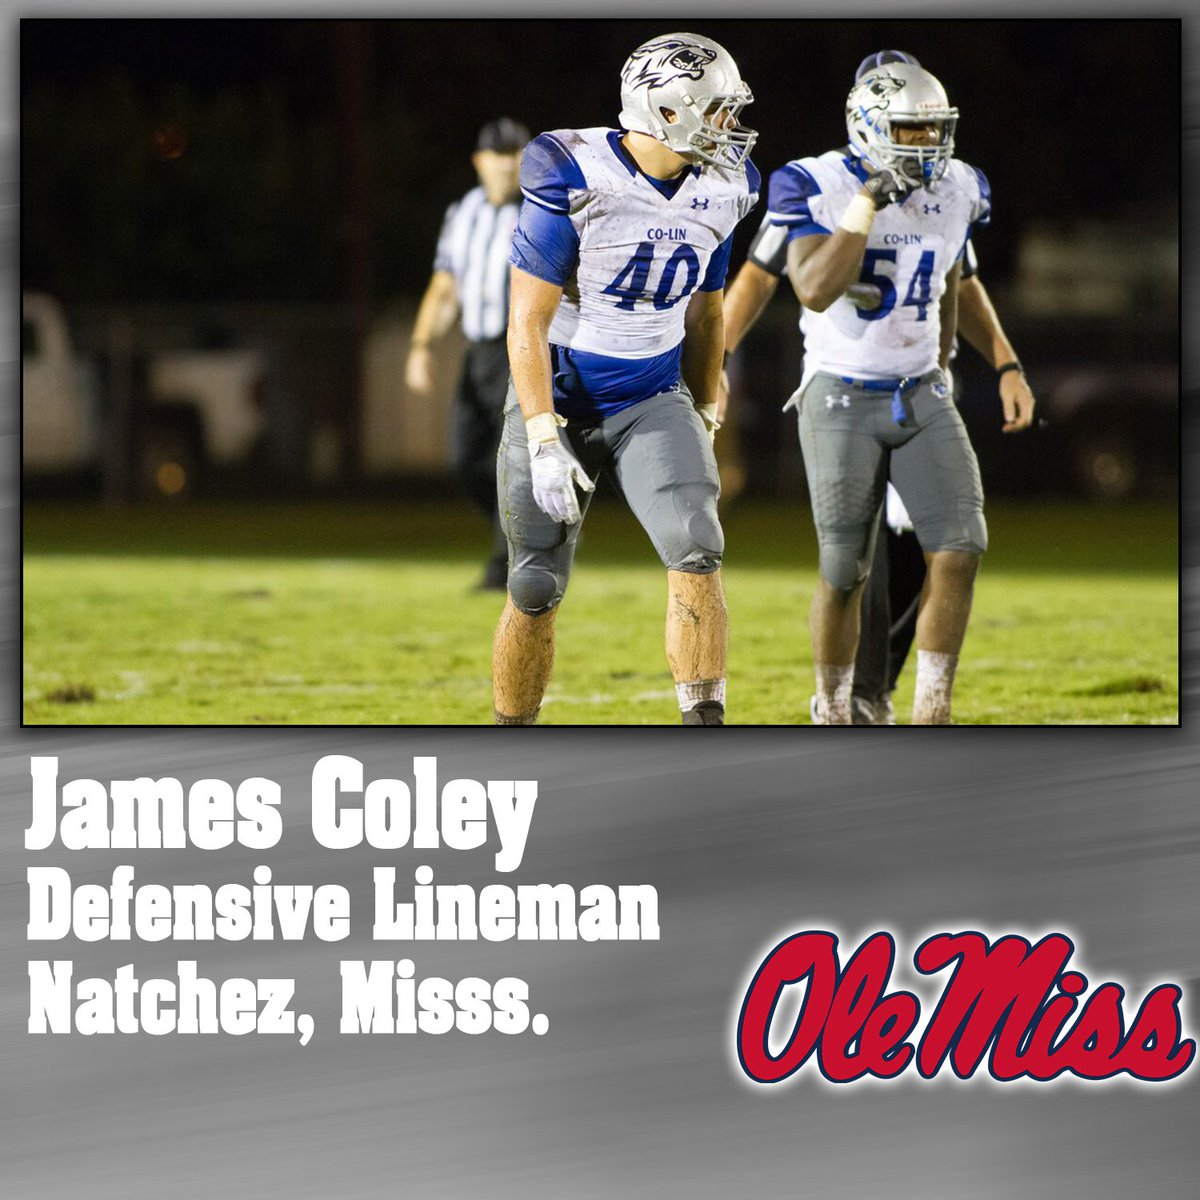 Congratulations to James Coley for continuing your career at @OleMissFB!